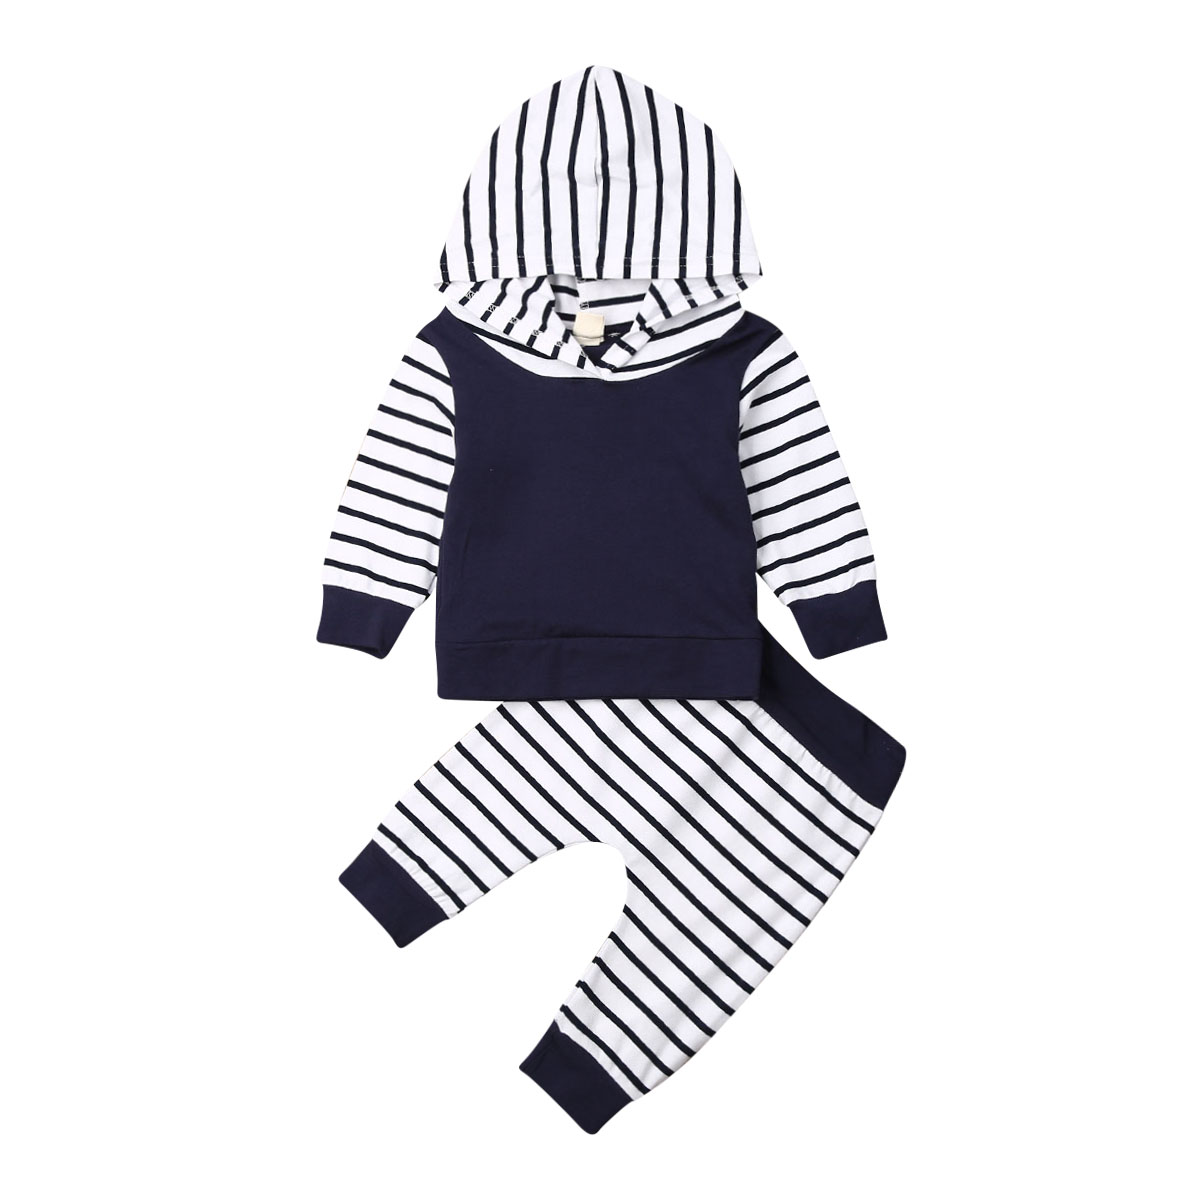 Newborn Infant Baby Boy Hooded Tops Sweatshirt Striped Pants Leggings Autumn Winter Outfit Clothes Sets